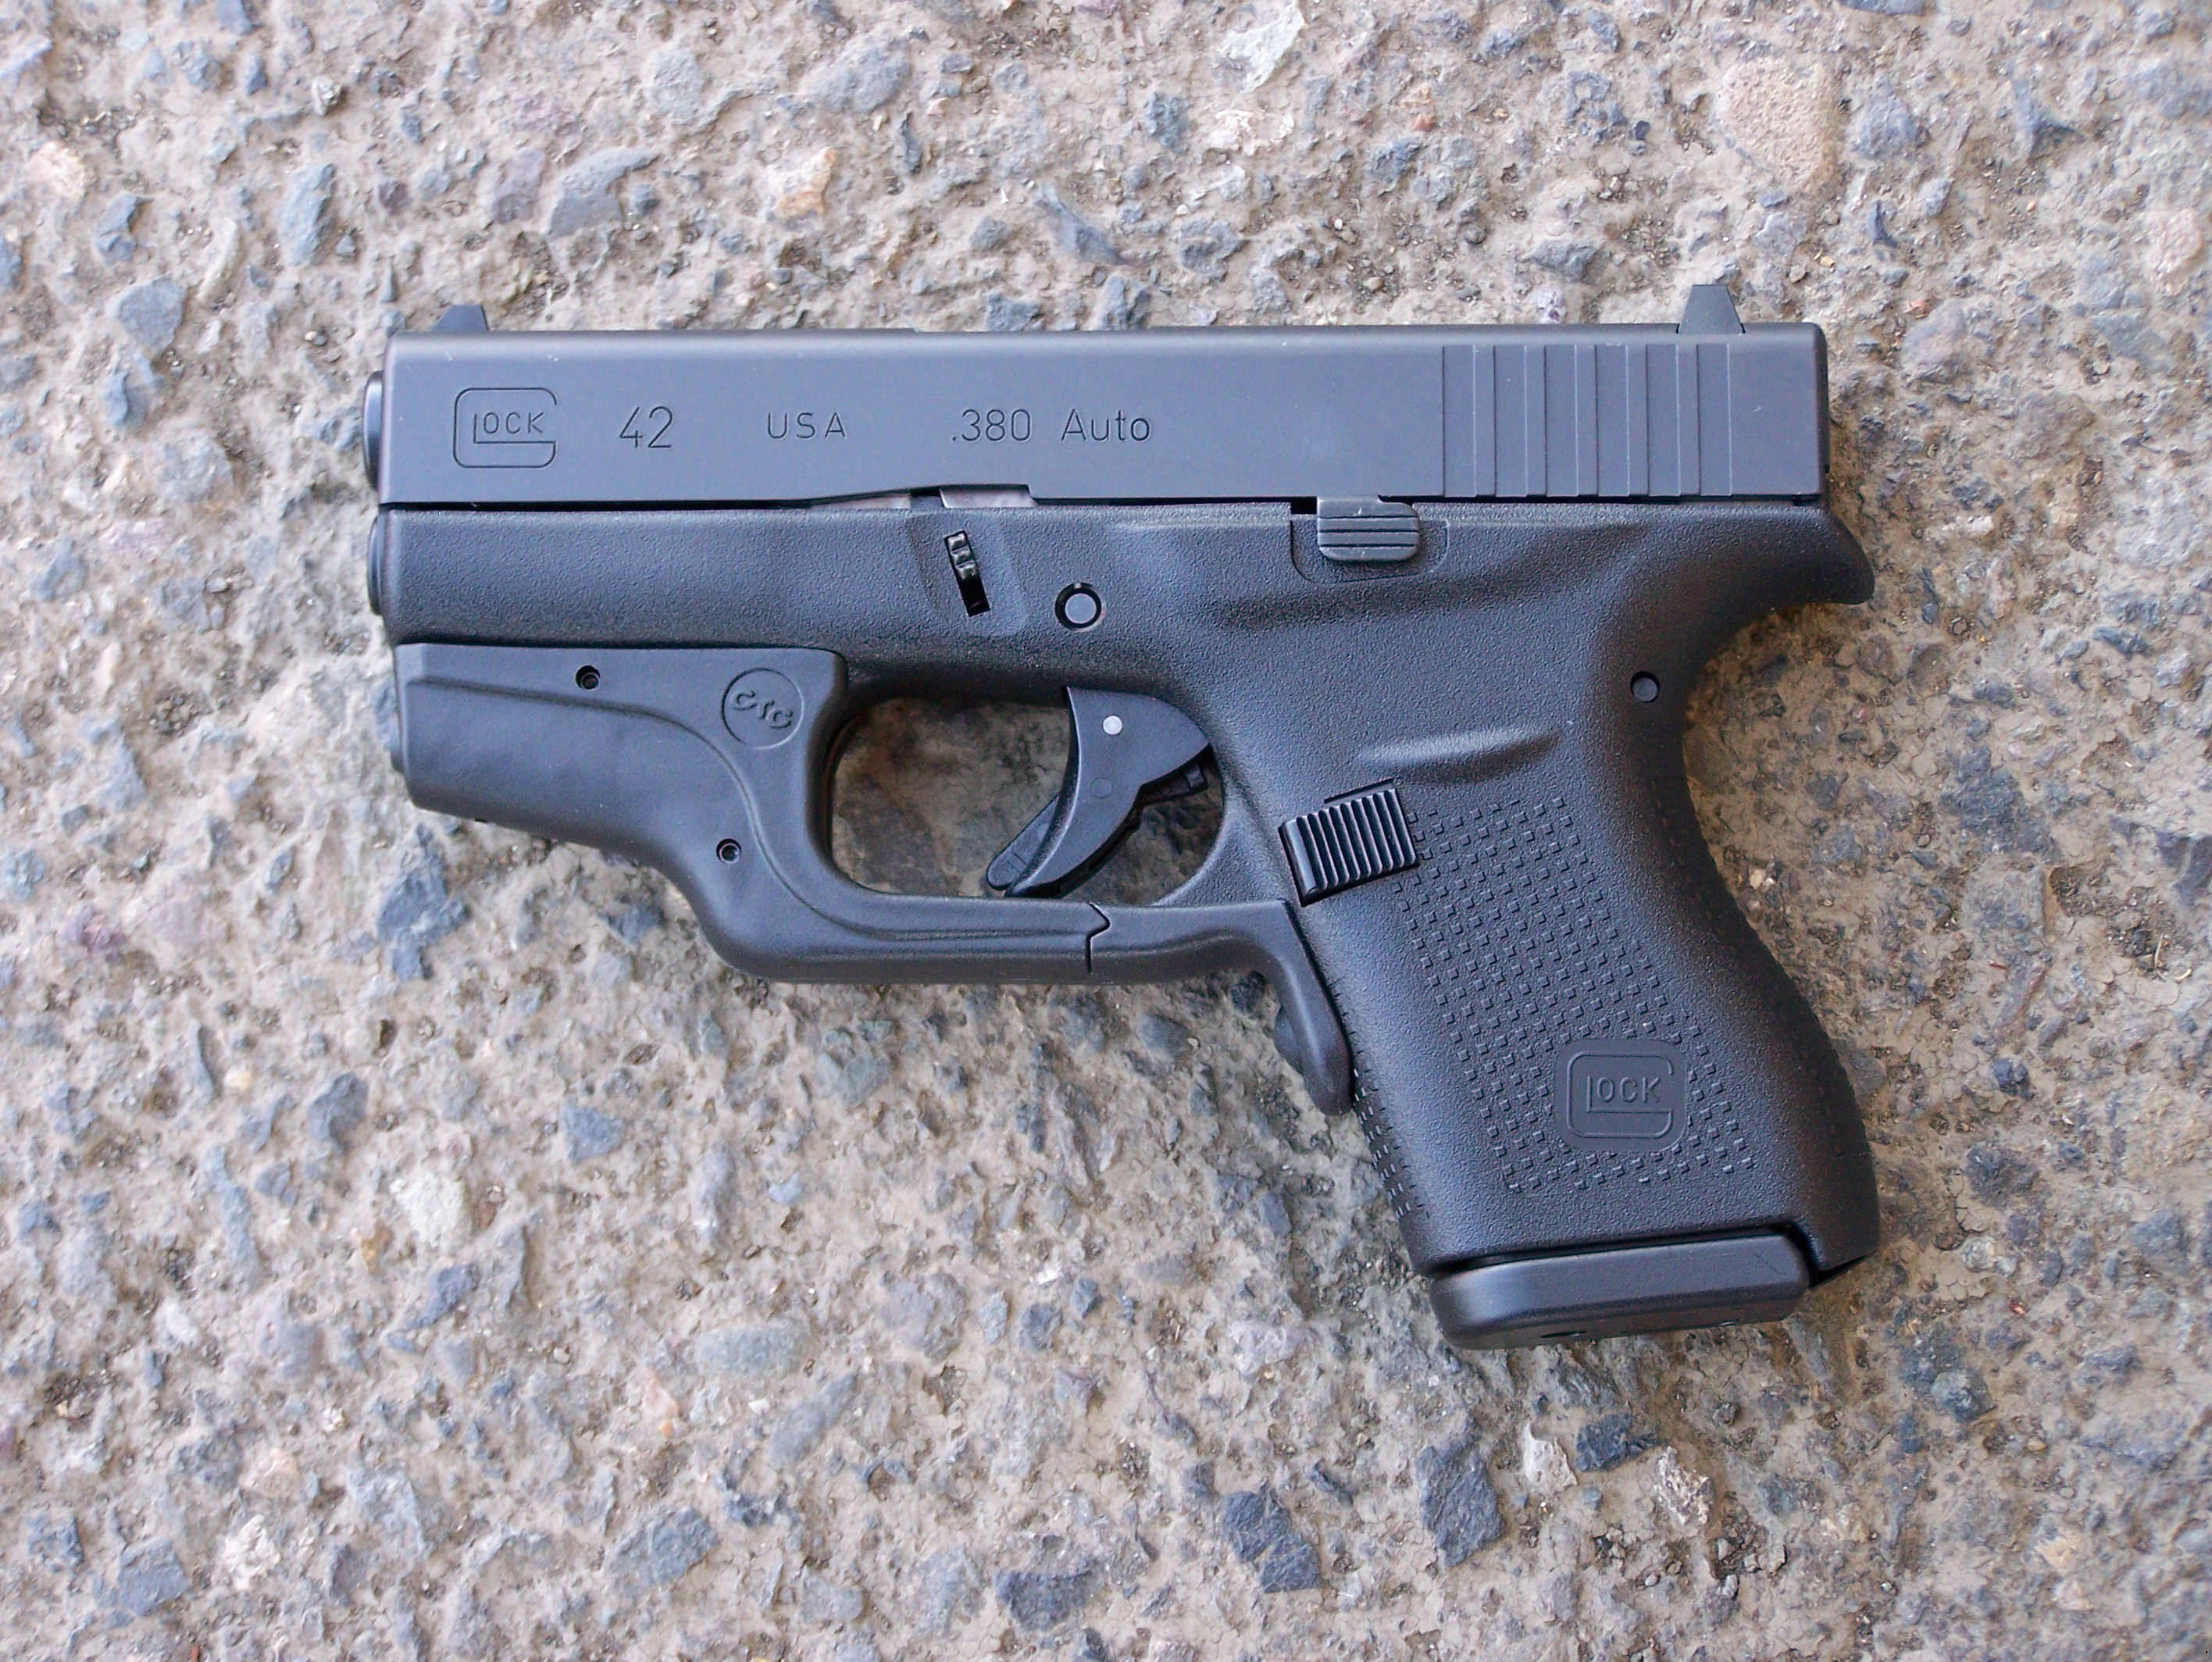 Review: Glock's Model 42 and Crimson Trace's LG-443